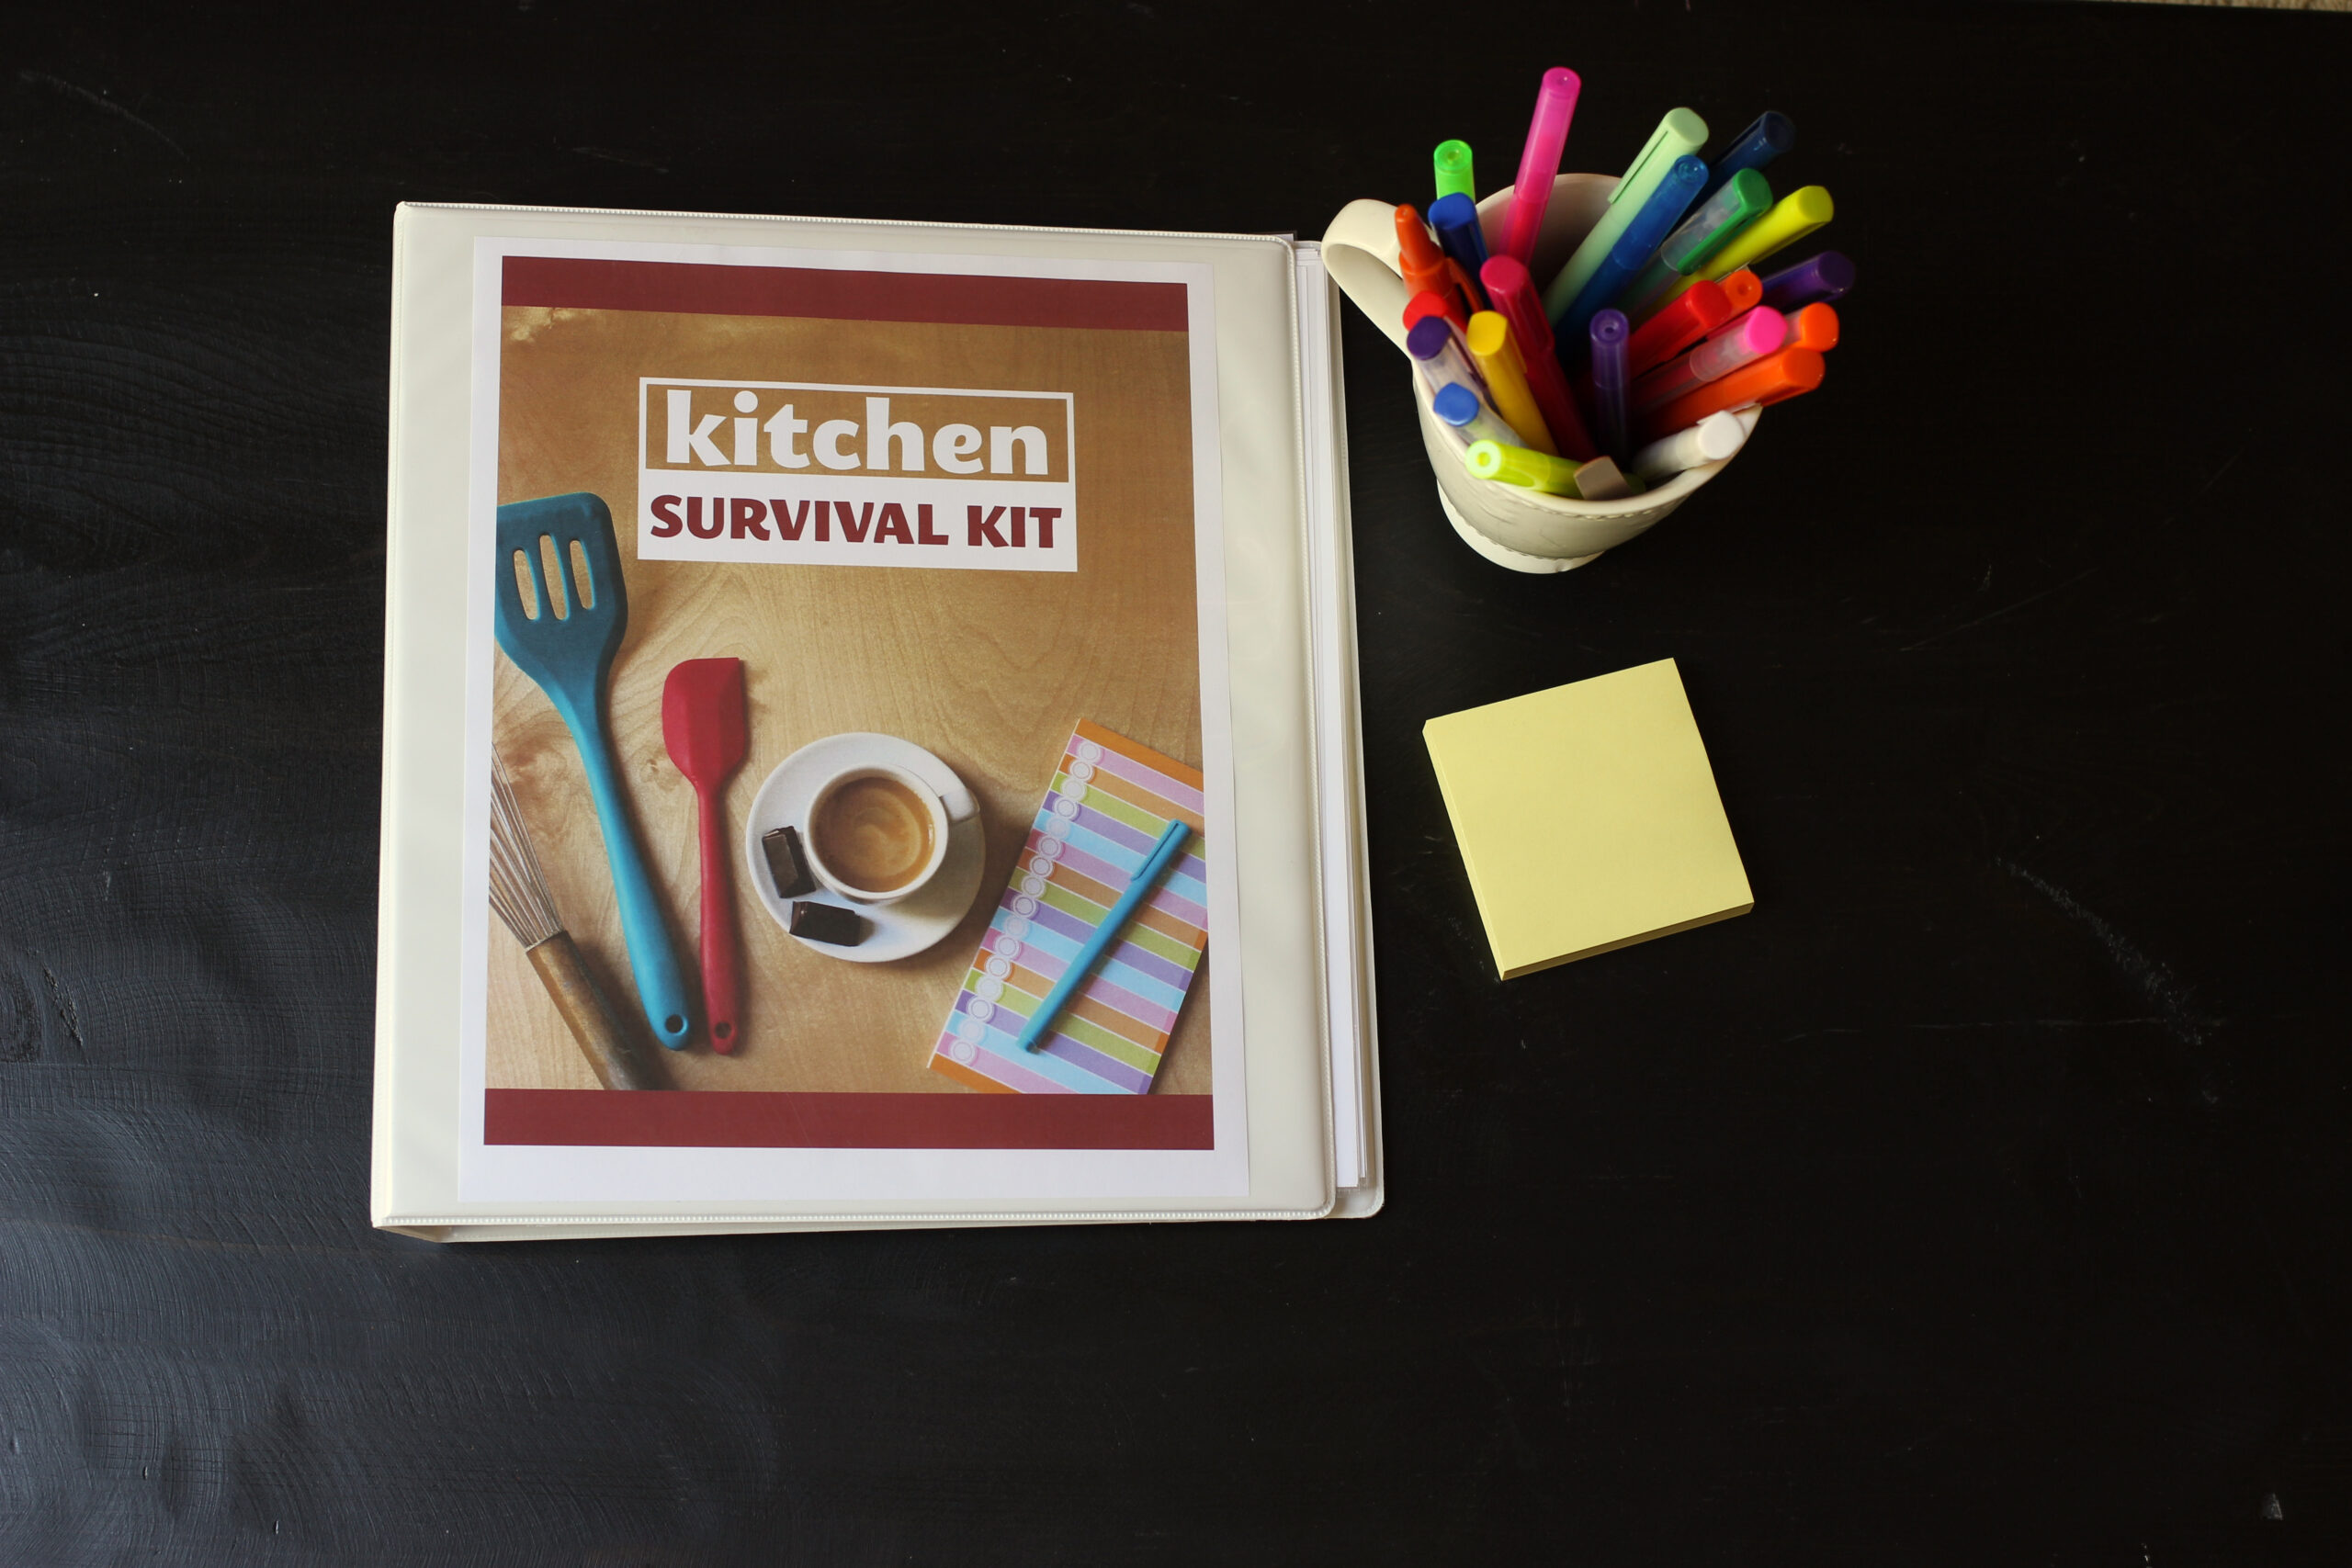 kitchen survival kit binder next to pens and post-its